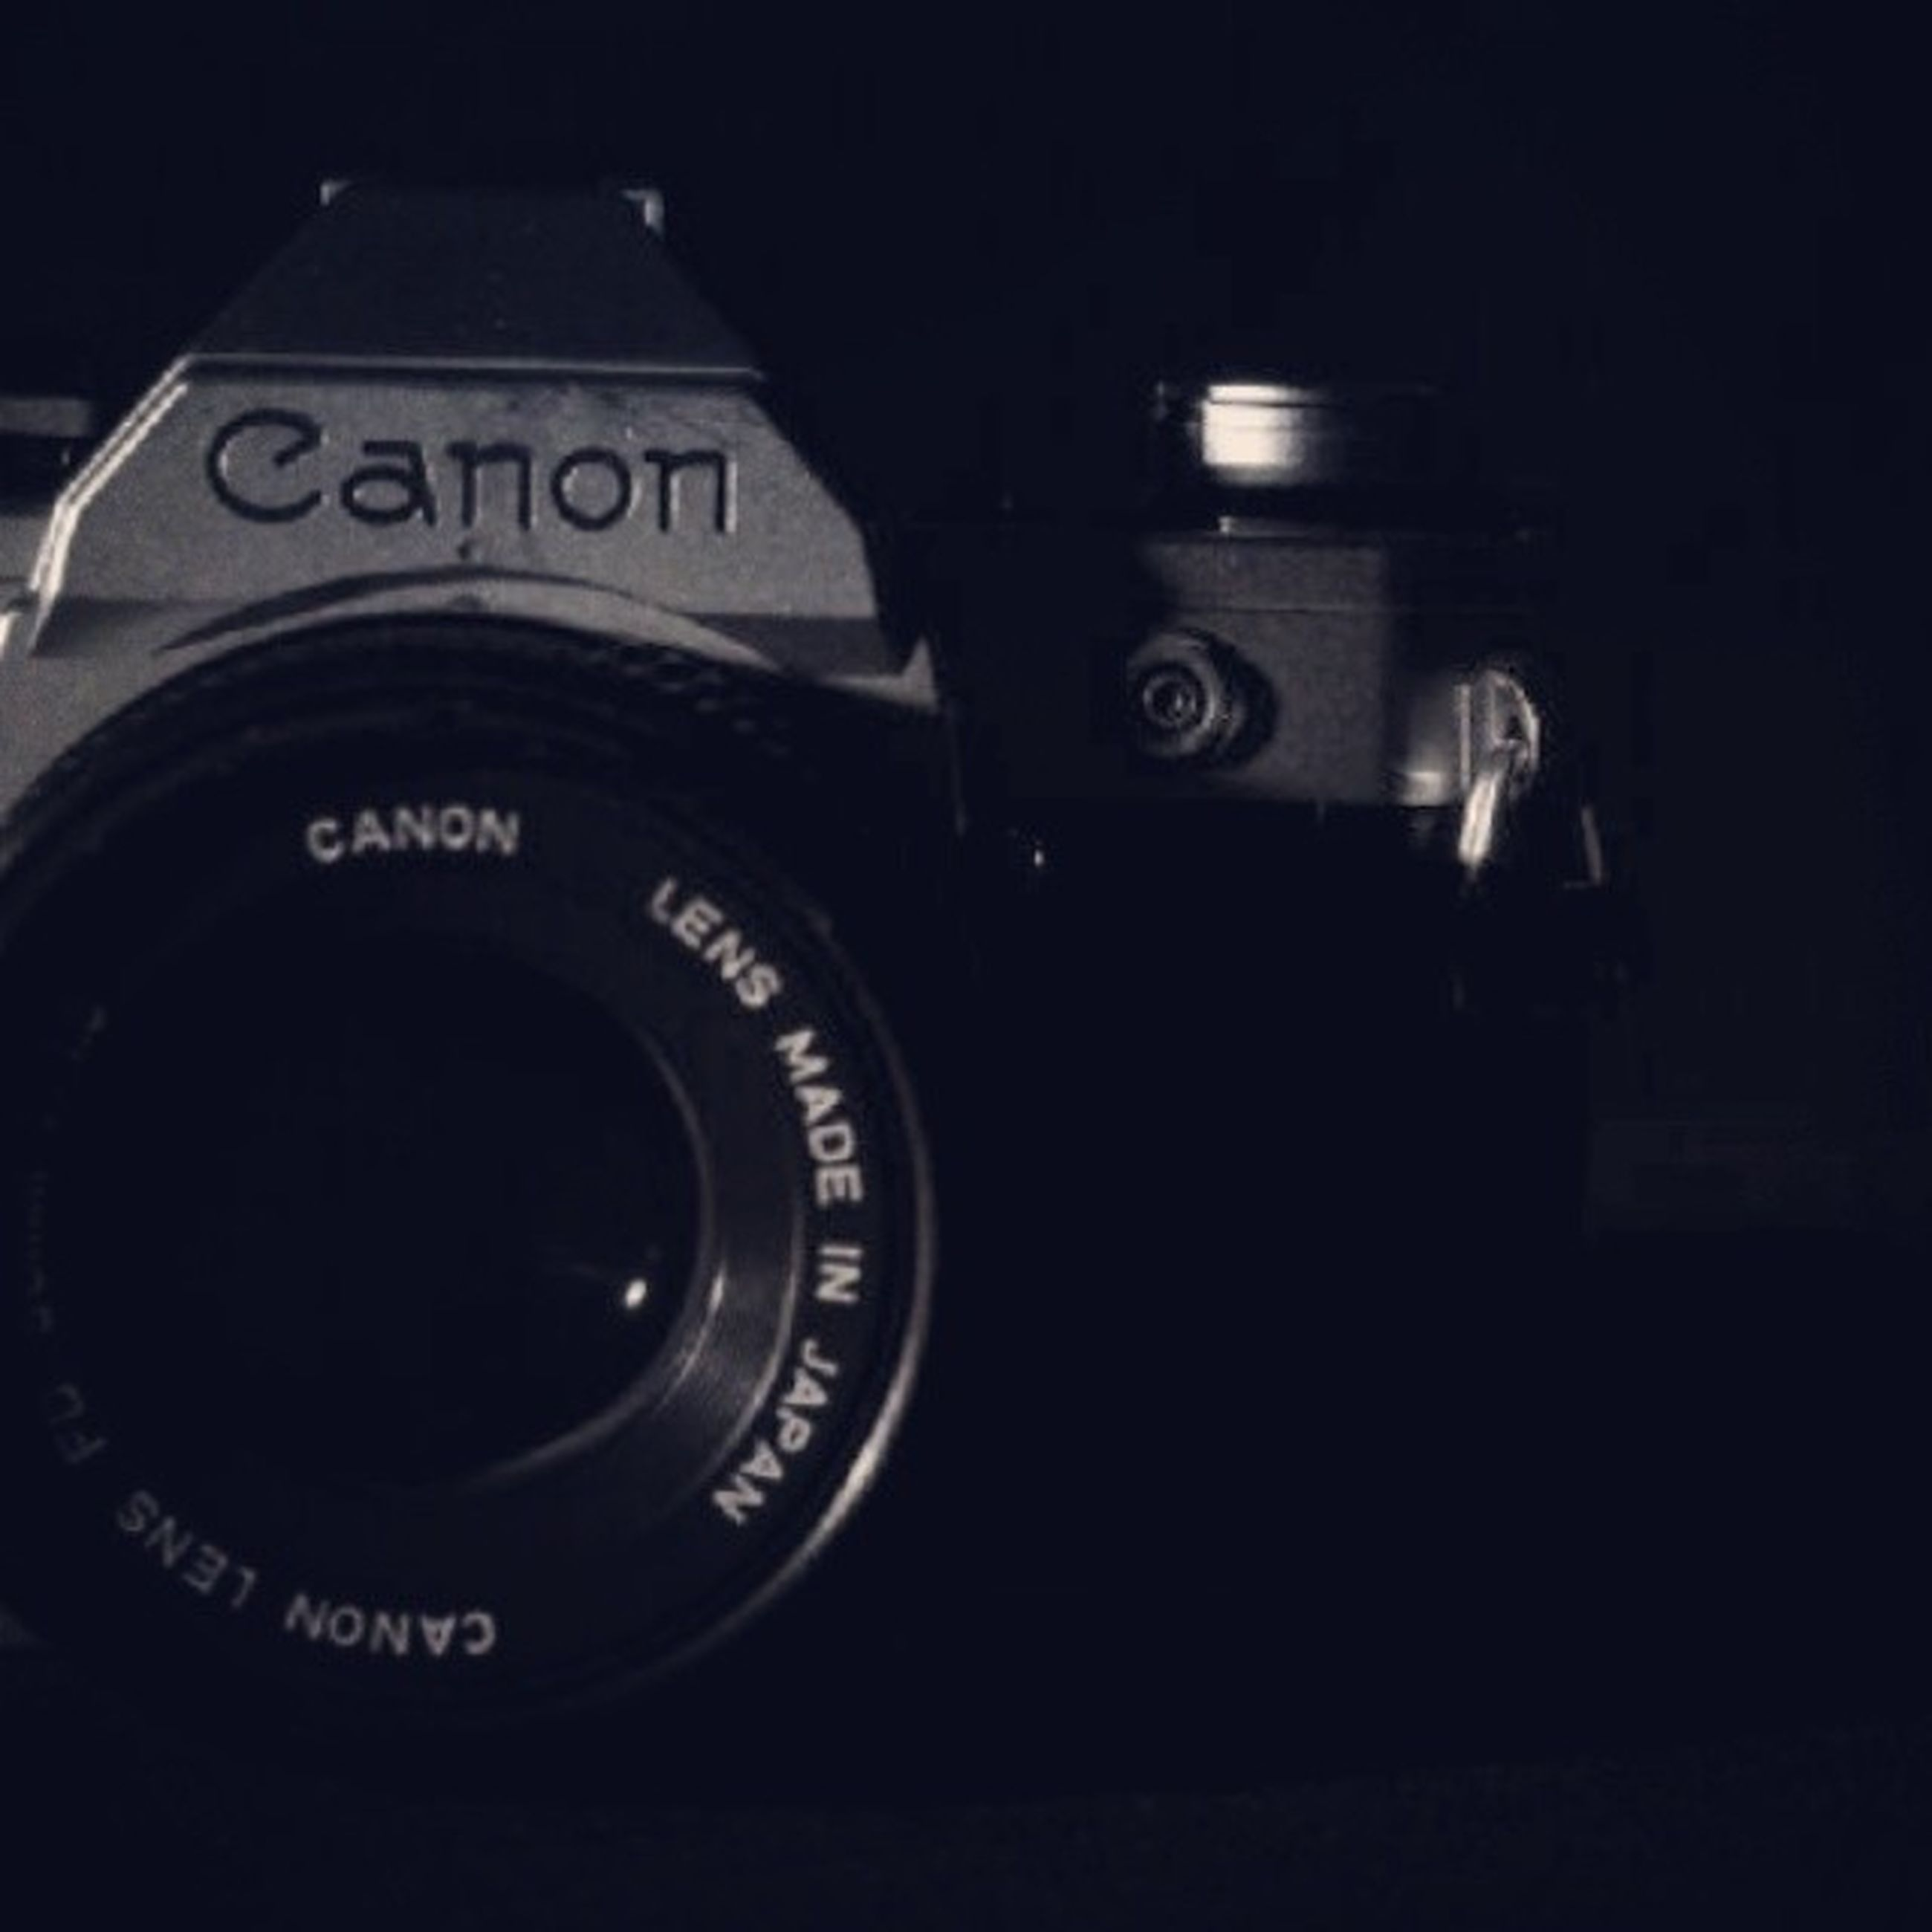 technology, communication, photography themes, indoors, camera - photographic equipment, close-up, wireless technology, text, retro styled, number, photographing, old-fashioned, lens - optical instrument, western script, digital camera, time, connection, mobile phone, telephone, smart phone